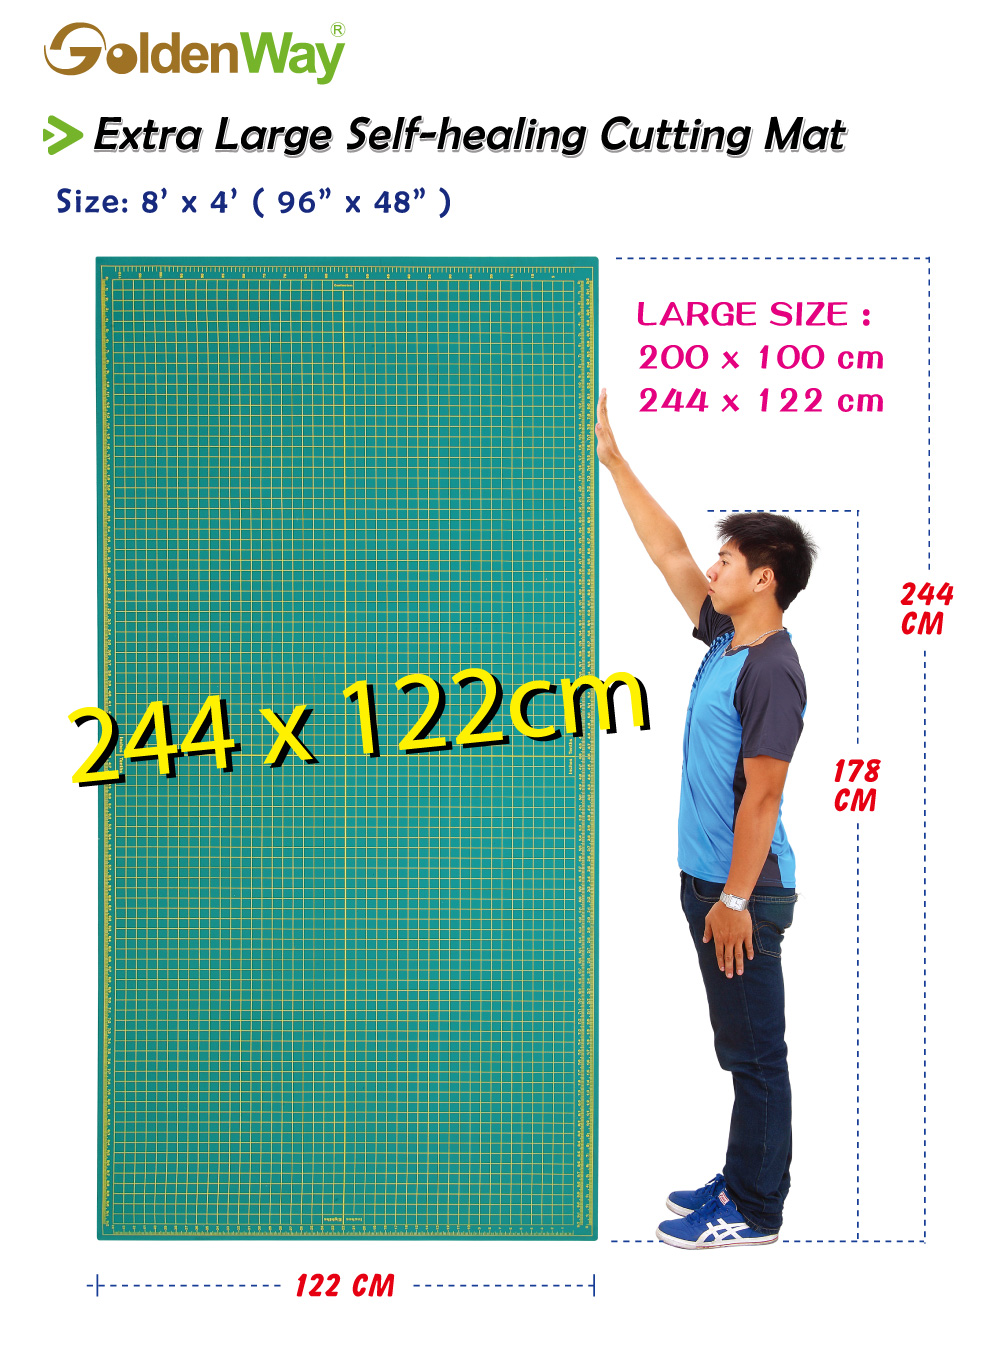 122 X 244 Cm Pvc Extra Large Size Self Healing Cutting Mat Buy Cutting Mat Self Healing Cutting Mat Large Size Cutting Mat Product On Alibaba Com